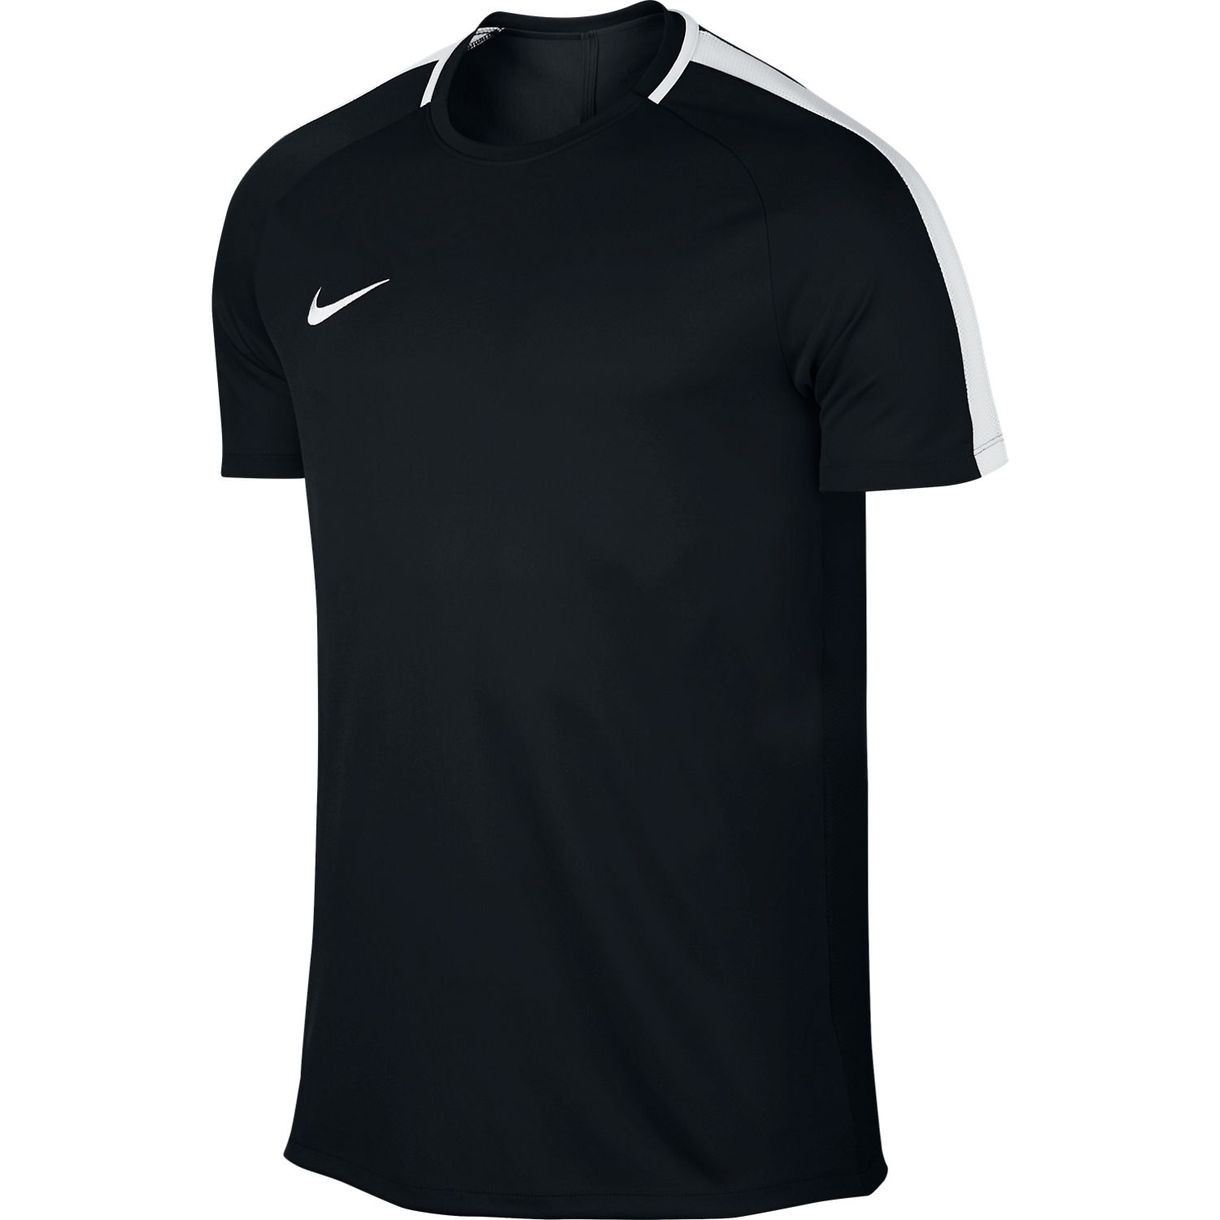 nike mens dry academy ss training top black 832967 010 uksoccershop. Black Bedroom Furniture Sets. Home Design Ideas